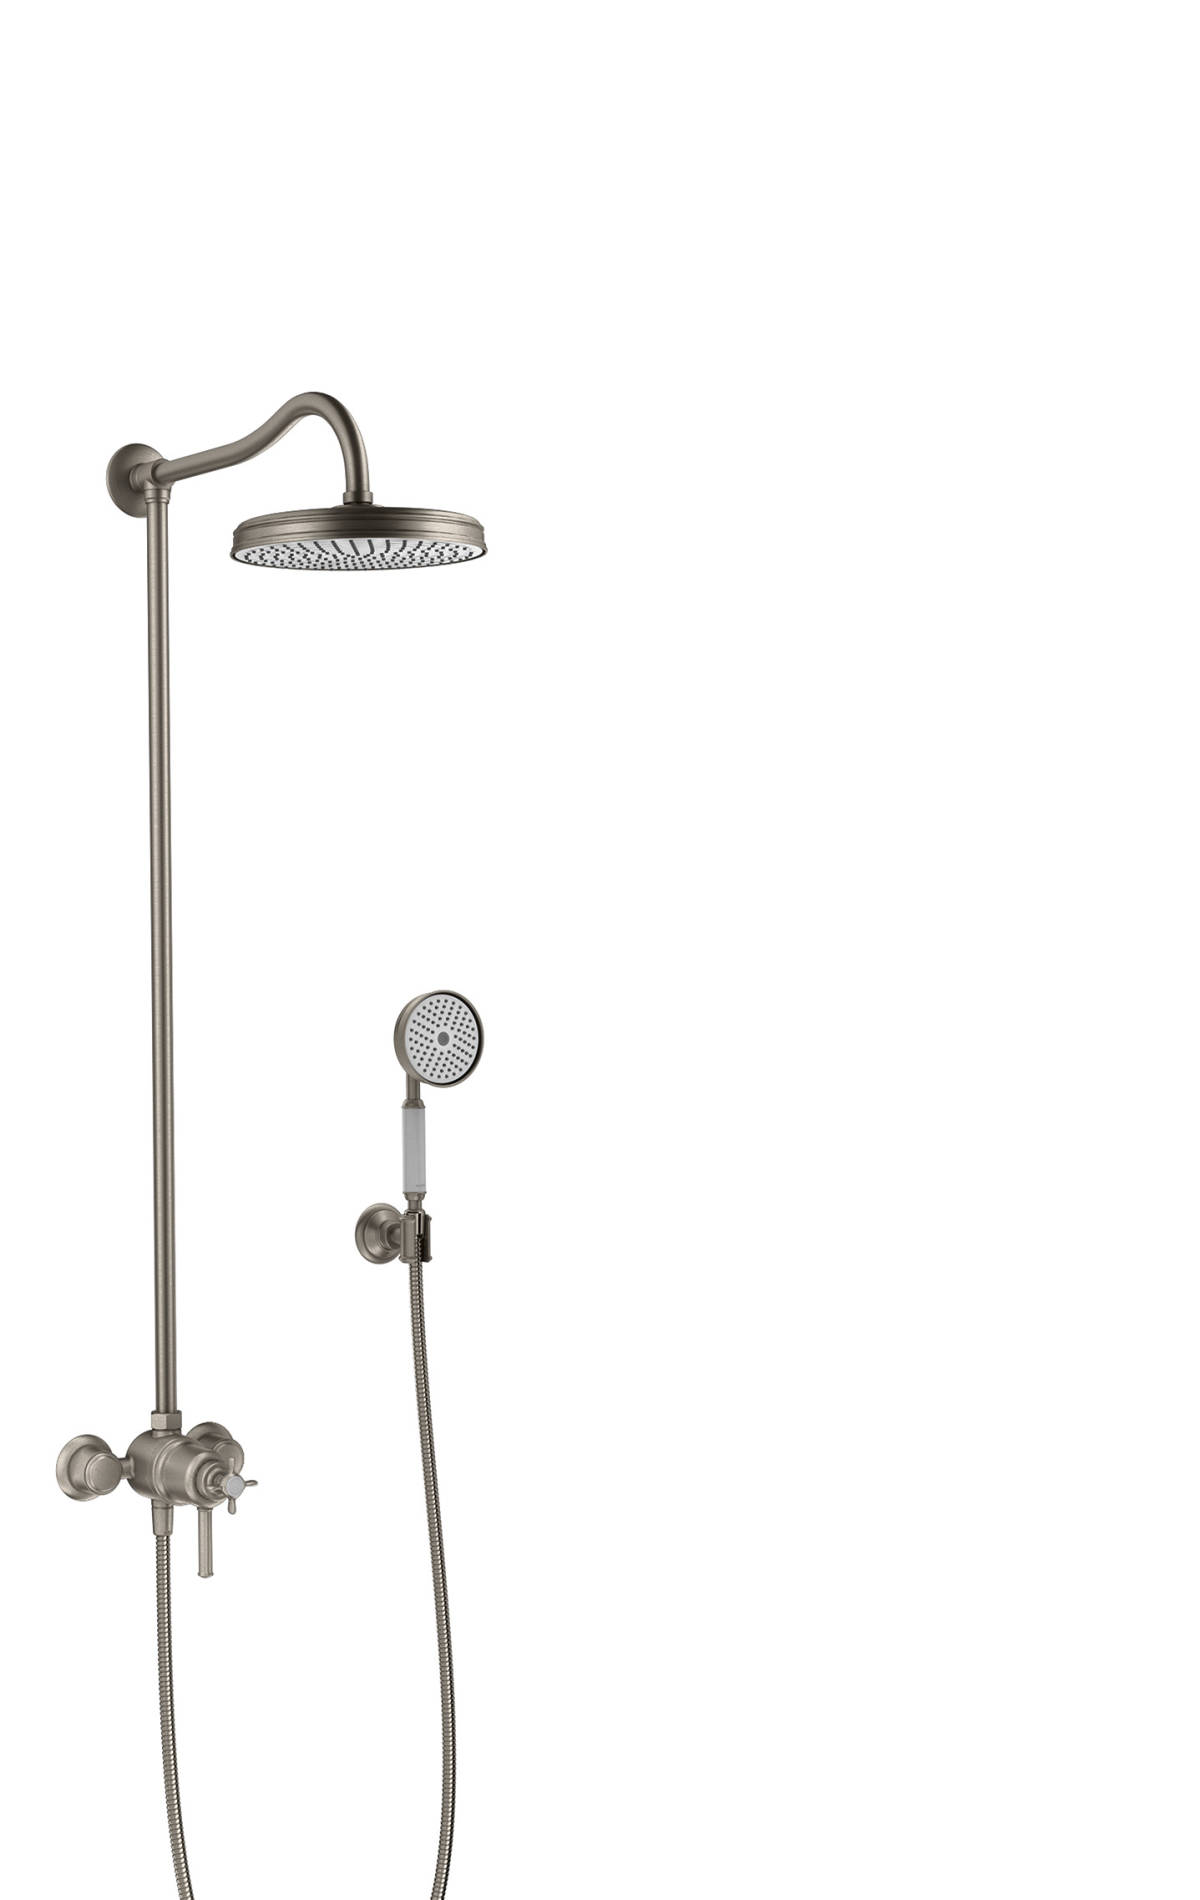 Showerpipe with thermostatic mixer and 1jet overhead shower, Stainless Steel Optic, 16570800